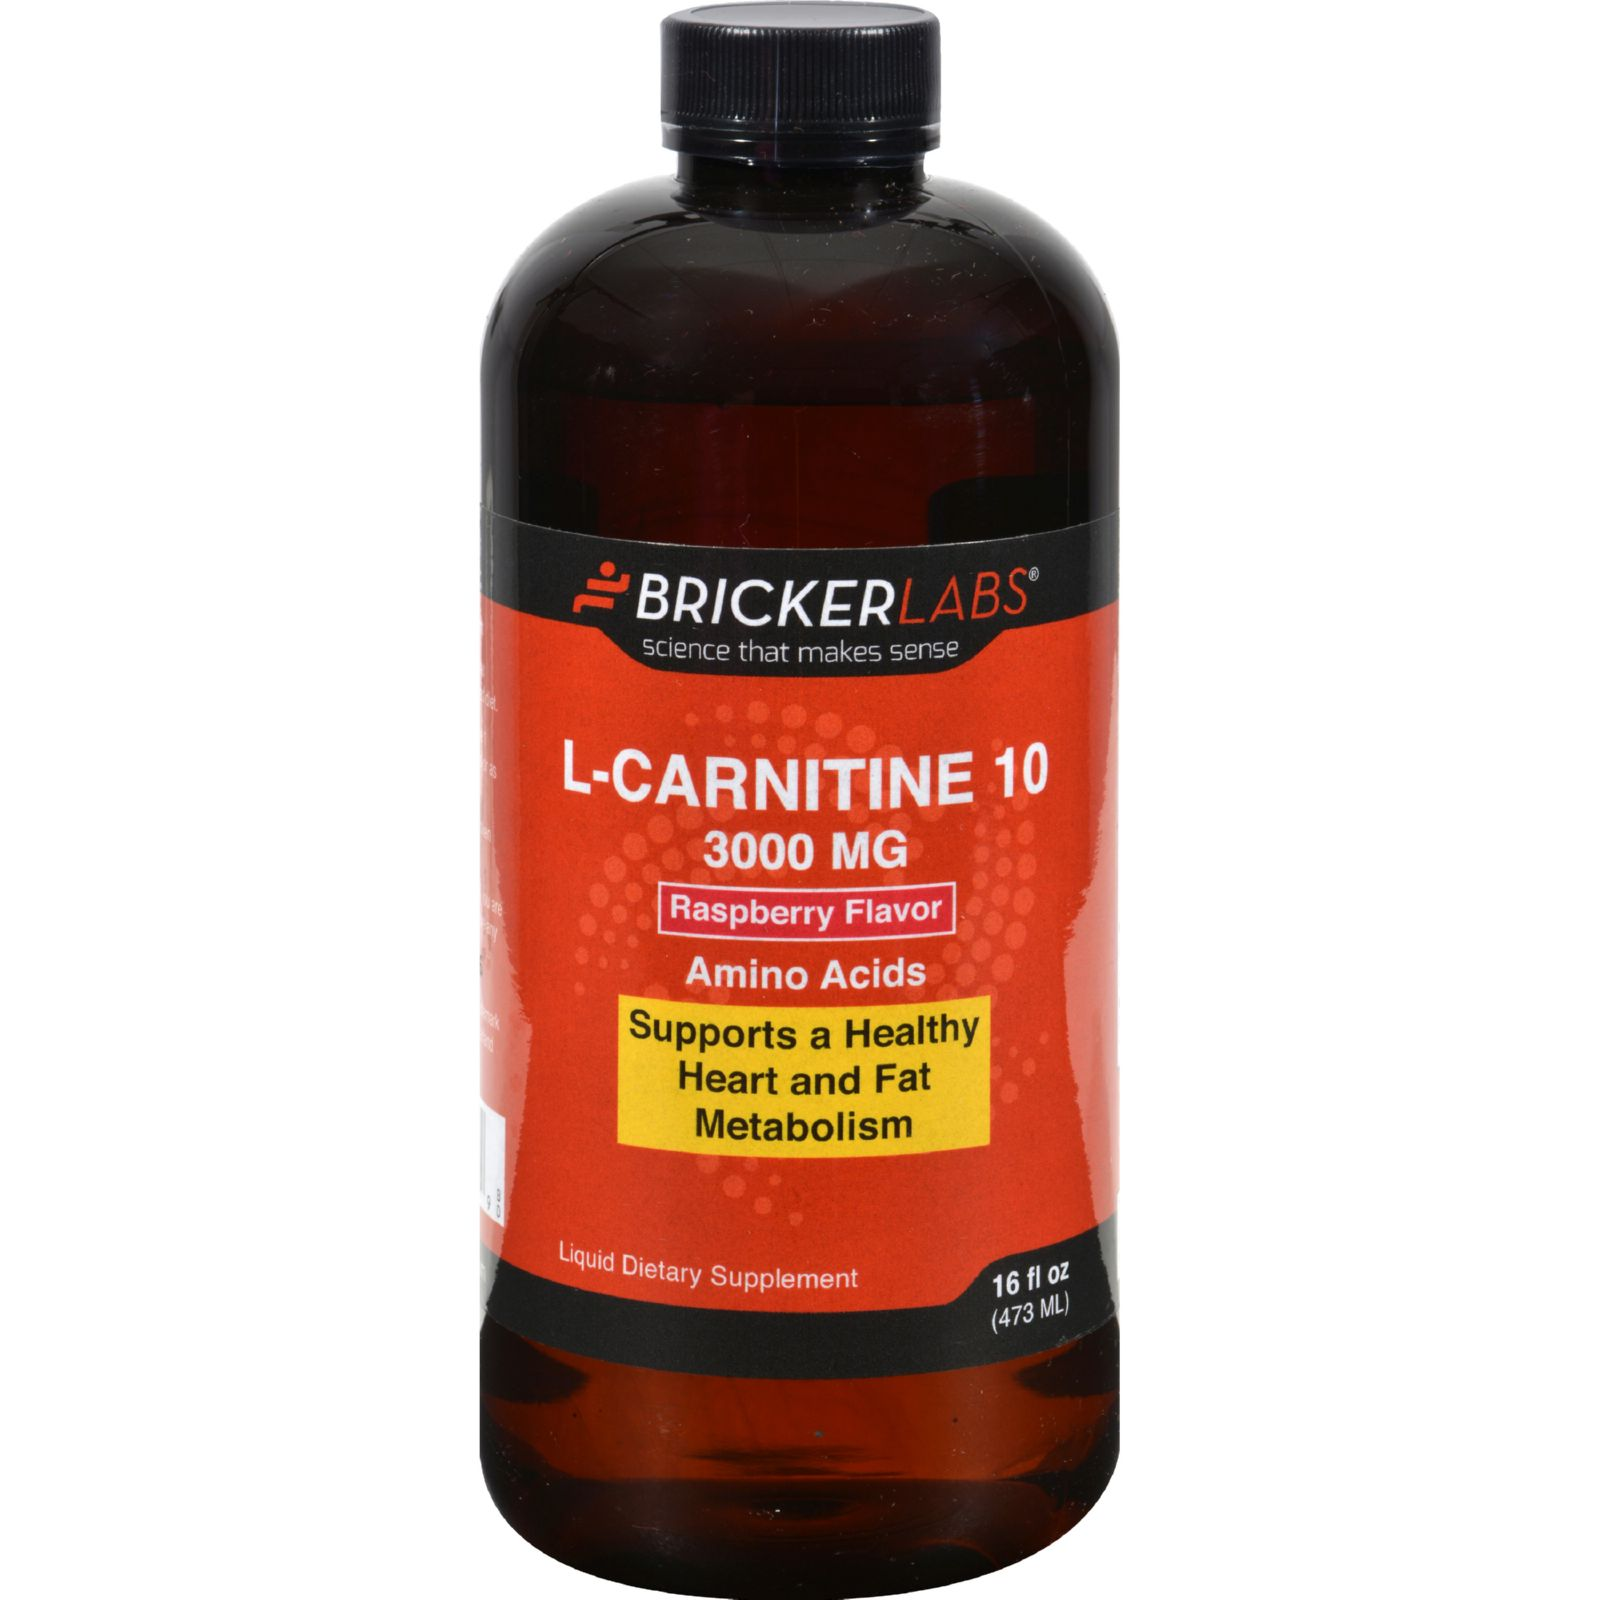 Bricker Labs Carnipure L-Carnitine Raspberry - 3000 mg - 16 fl oz